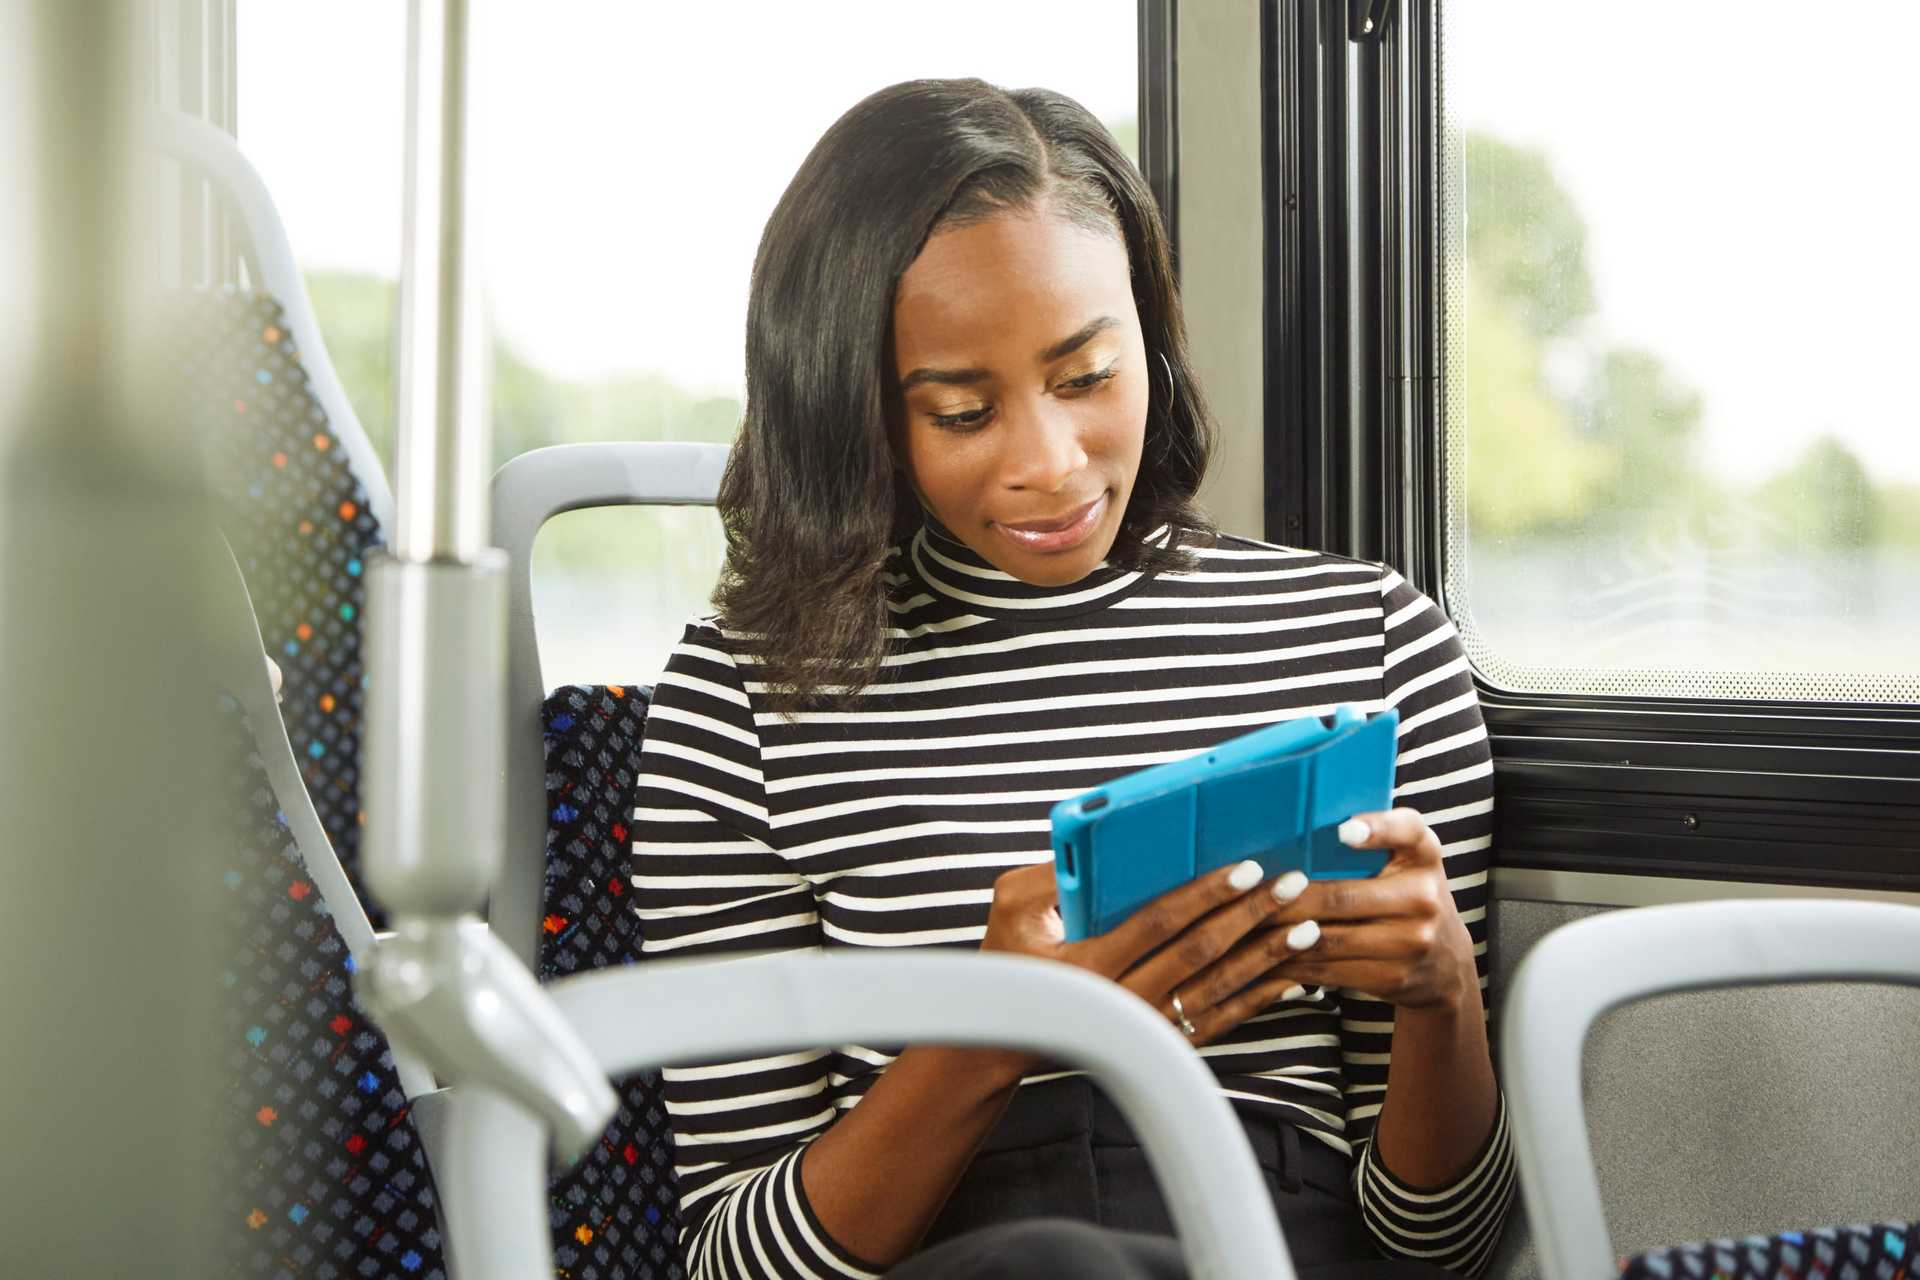 College Student on a bus using a tablet